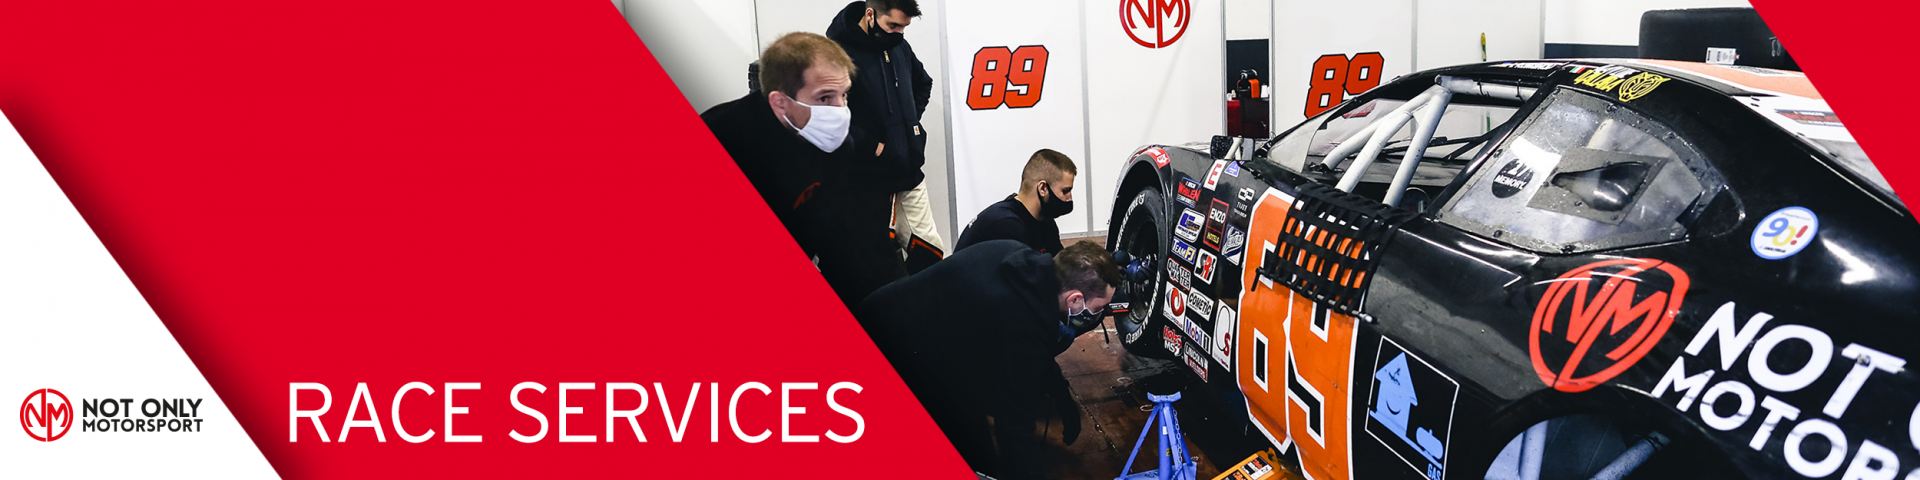 Race Services Not Only Motorsport